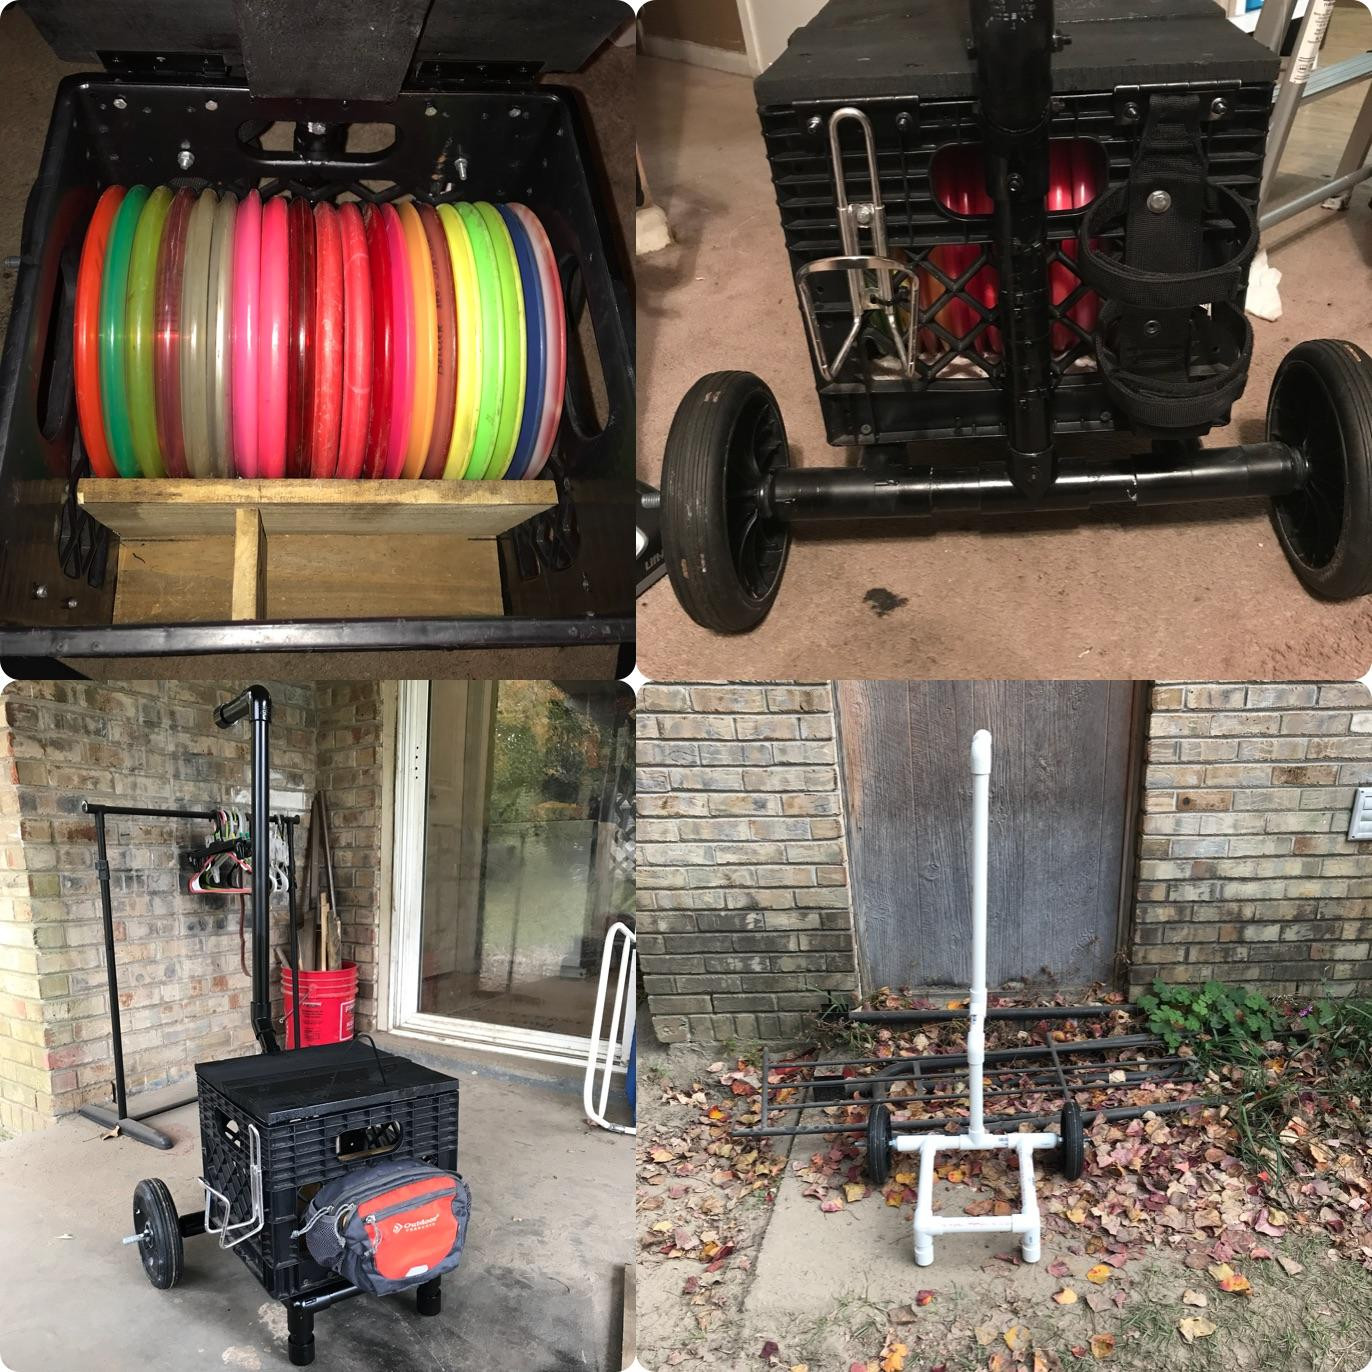 Best ideas about DIY Disc Golf Cart . Save or Pin DIY PVC Disc Golf Cart full view discgolf Now.